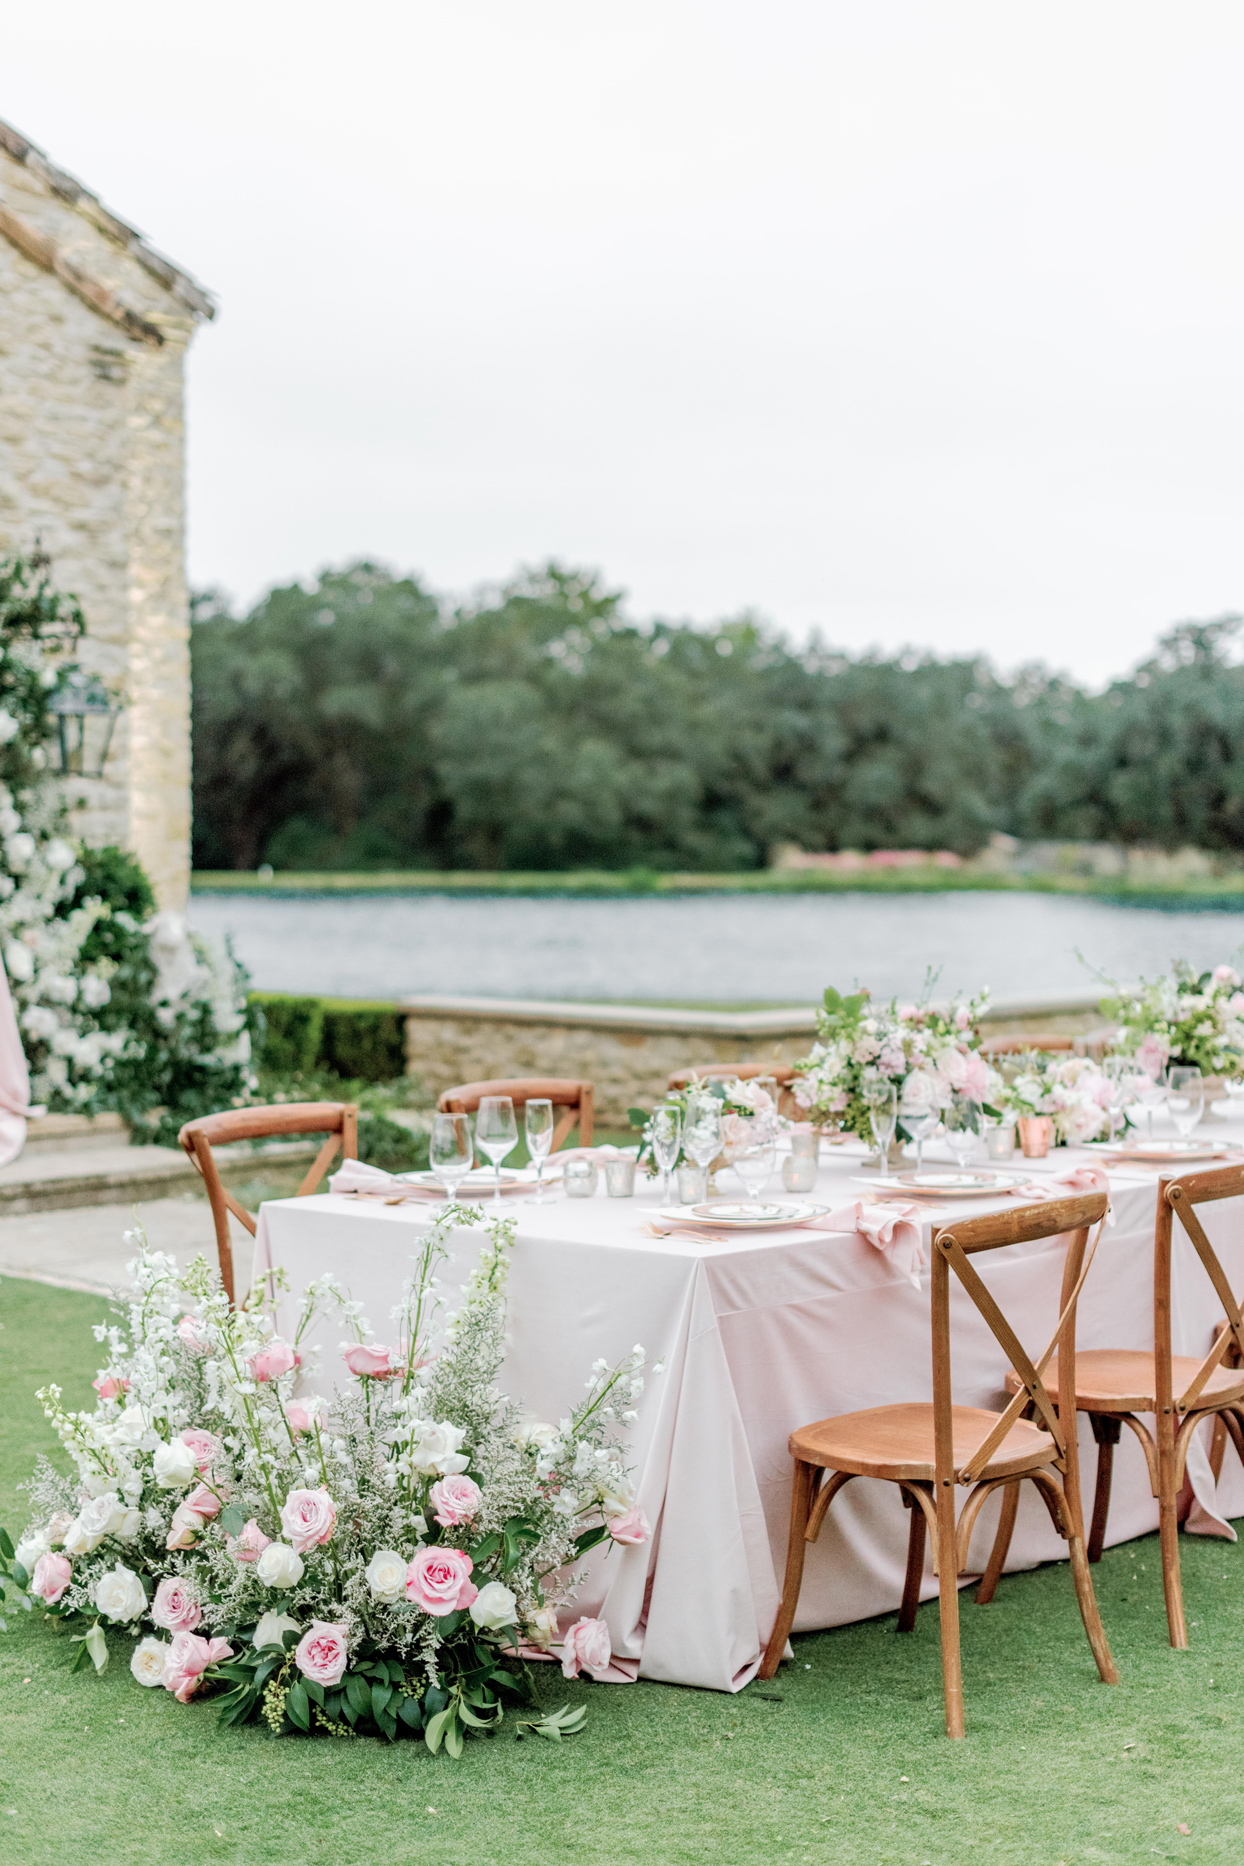 table setting with pink tablecloth and floral arrangements with gold accents